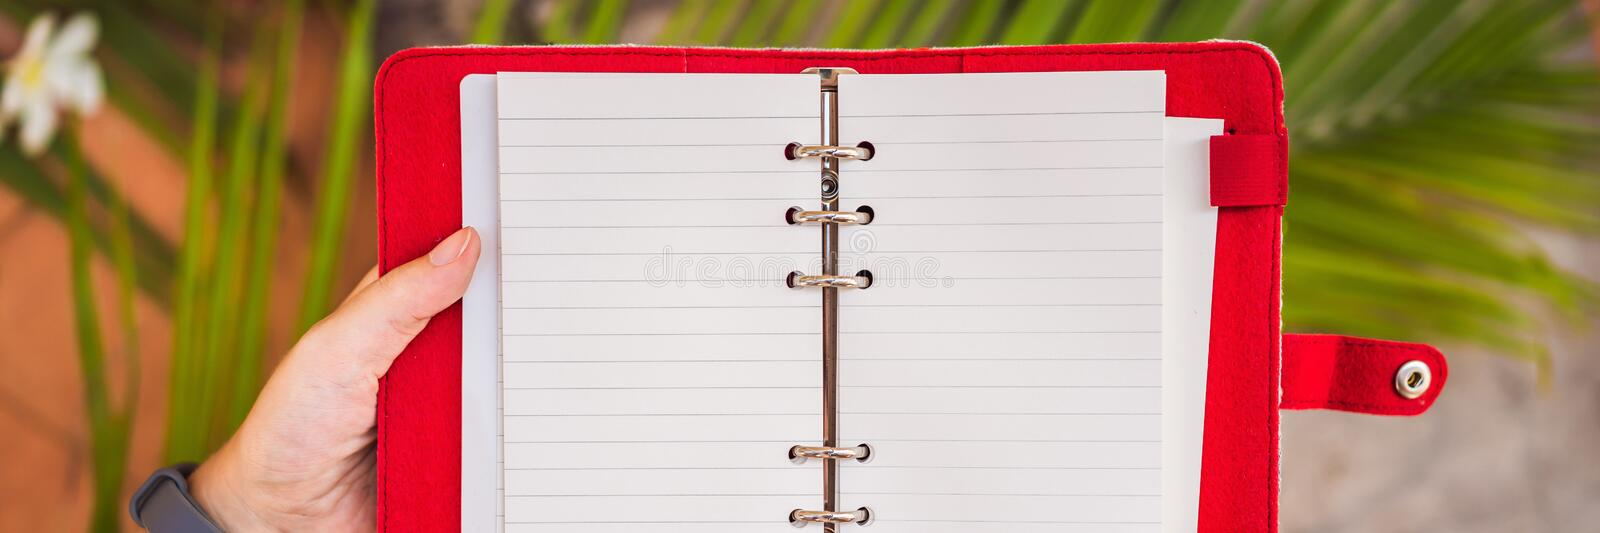 Notepad and stationery on wooden background. Planner for business and study. Fans of stationery BANNER, LONG FORMAT. Notepad and stationery on wooden background stock photo